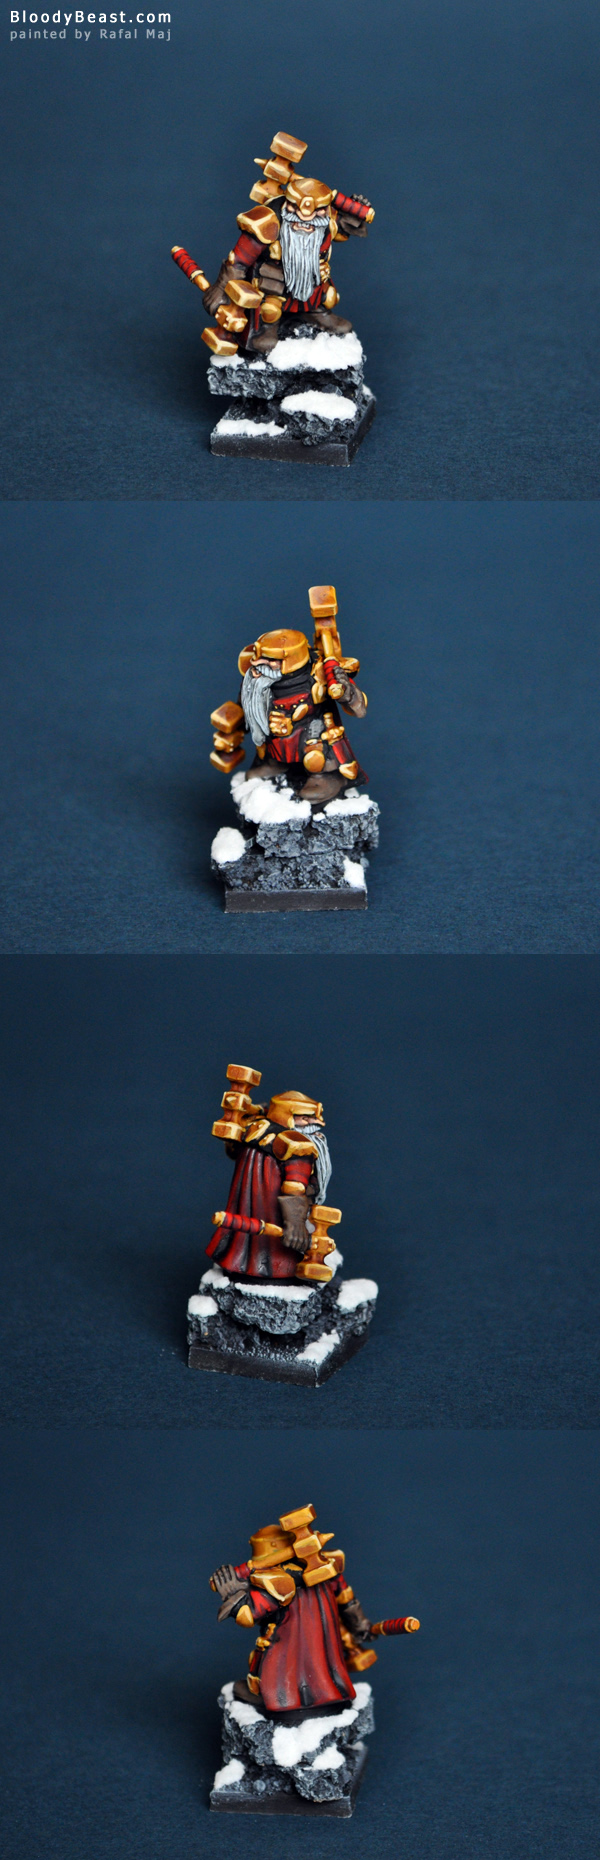 Mantic Dwarf Warsmith painted by Rafal Maj (BloodyBeast.com)